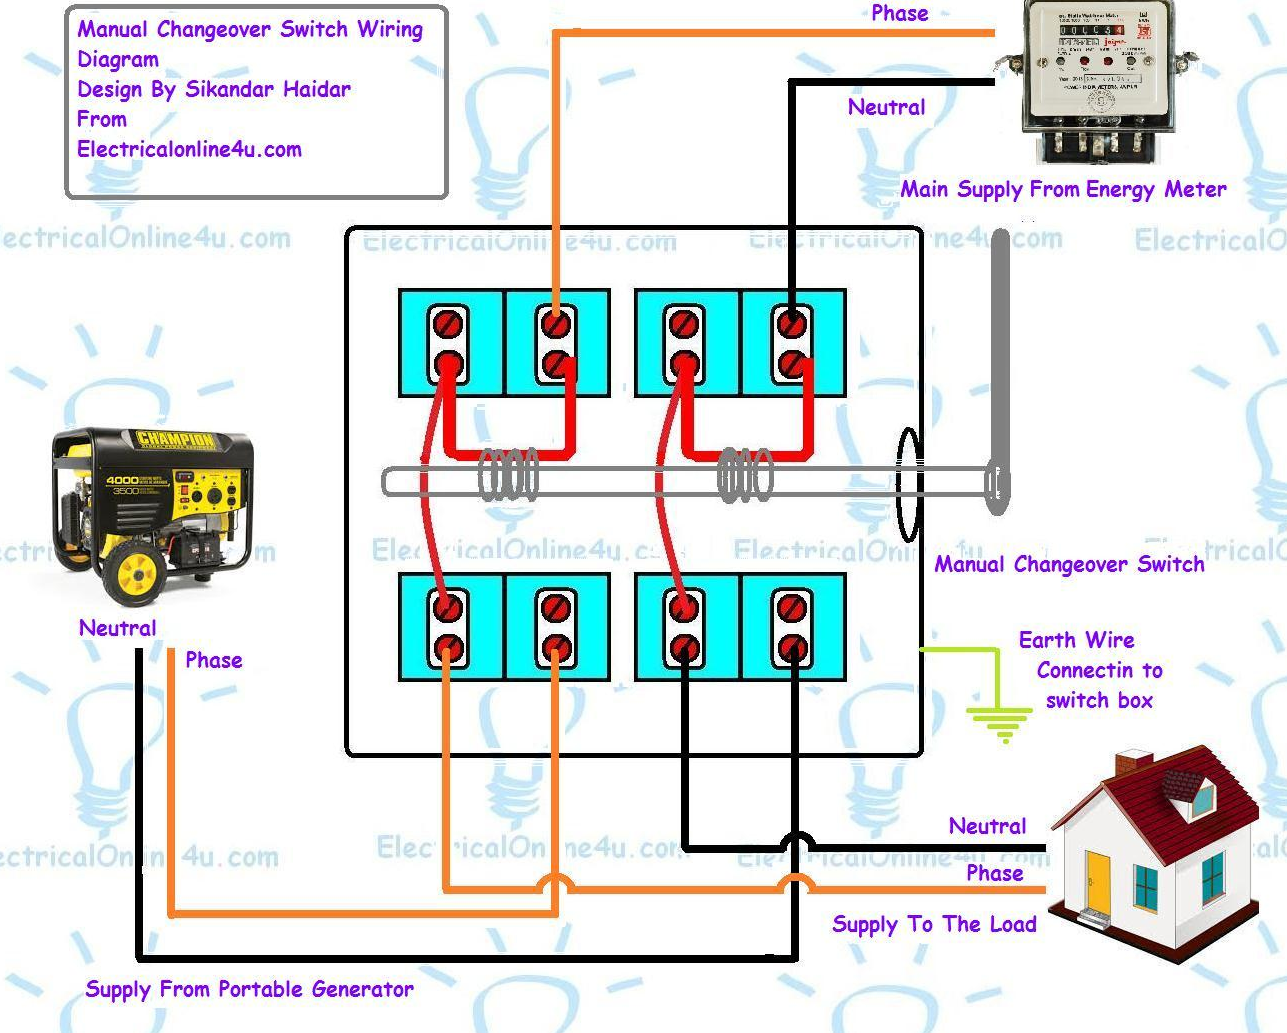 manual%2Bchangeover%2Bswitch%2Bwiring%2Bdiagram manual changeover switch wiring diagram for portable generator single phase generator wiring diagram at letsshop.co